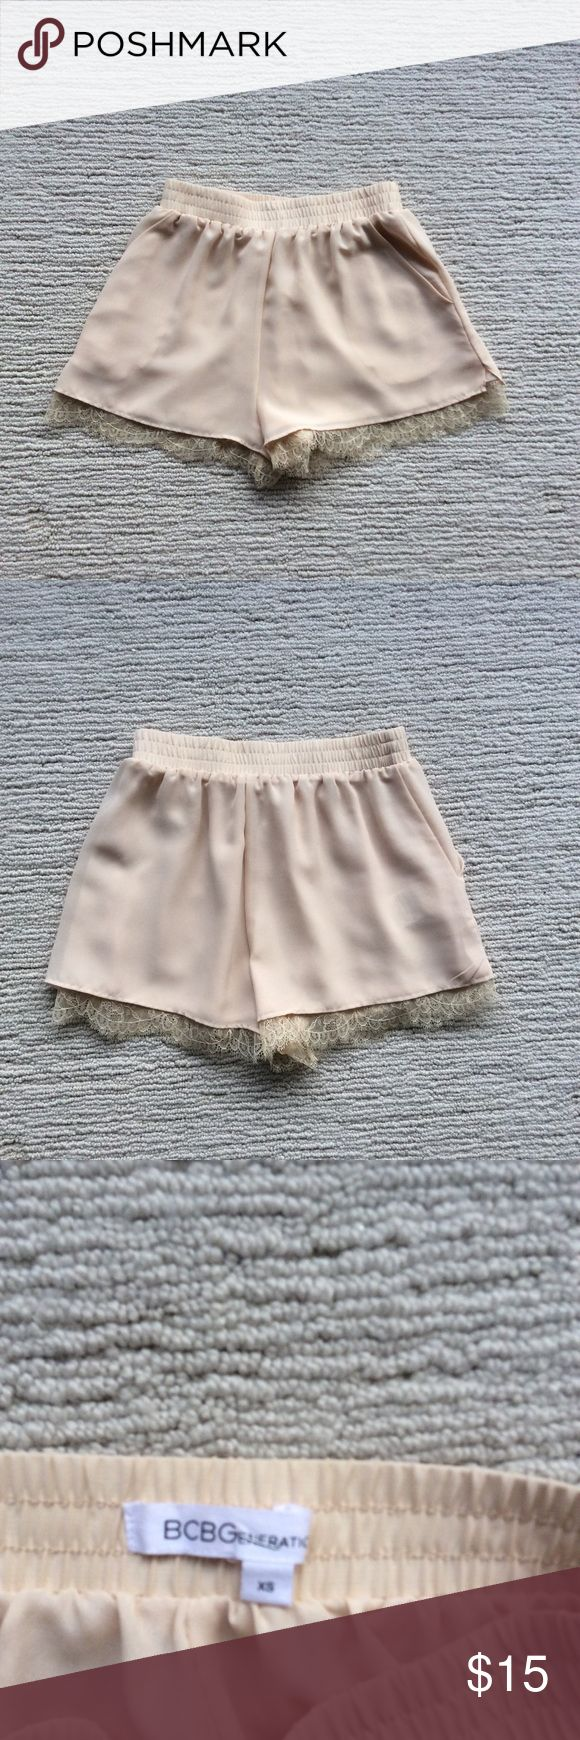 BCBG GENERATION SHORTS Great shorts have elastic waist, Size XS, lined with pockets, with lace hangs down really very feminine and soft look. Like new! BCBGeneration Shorts